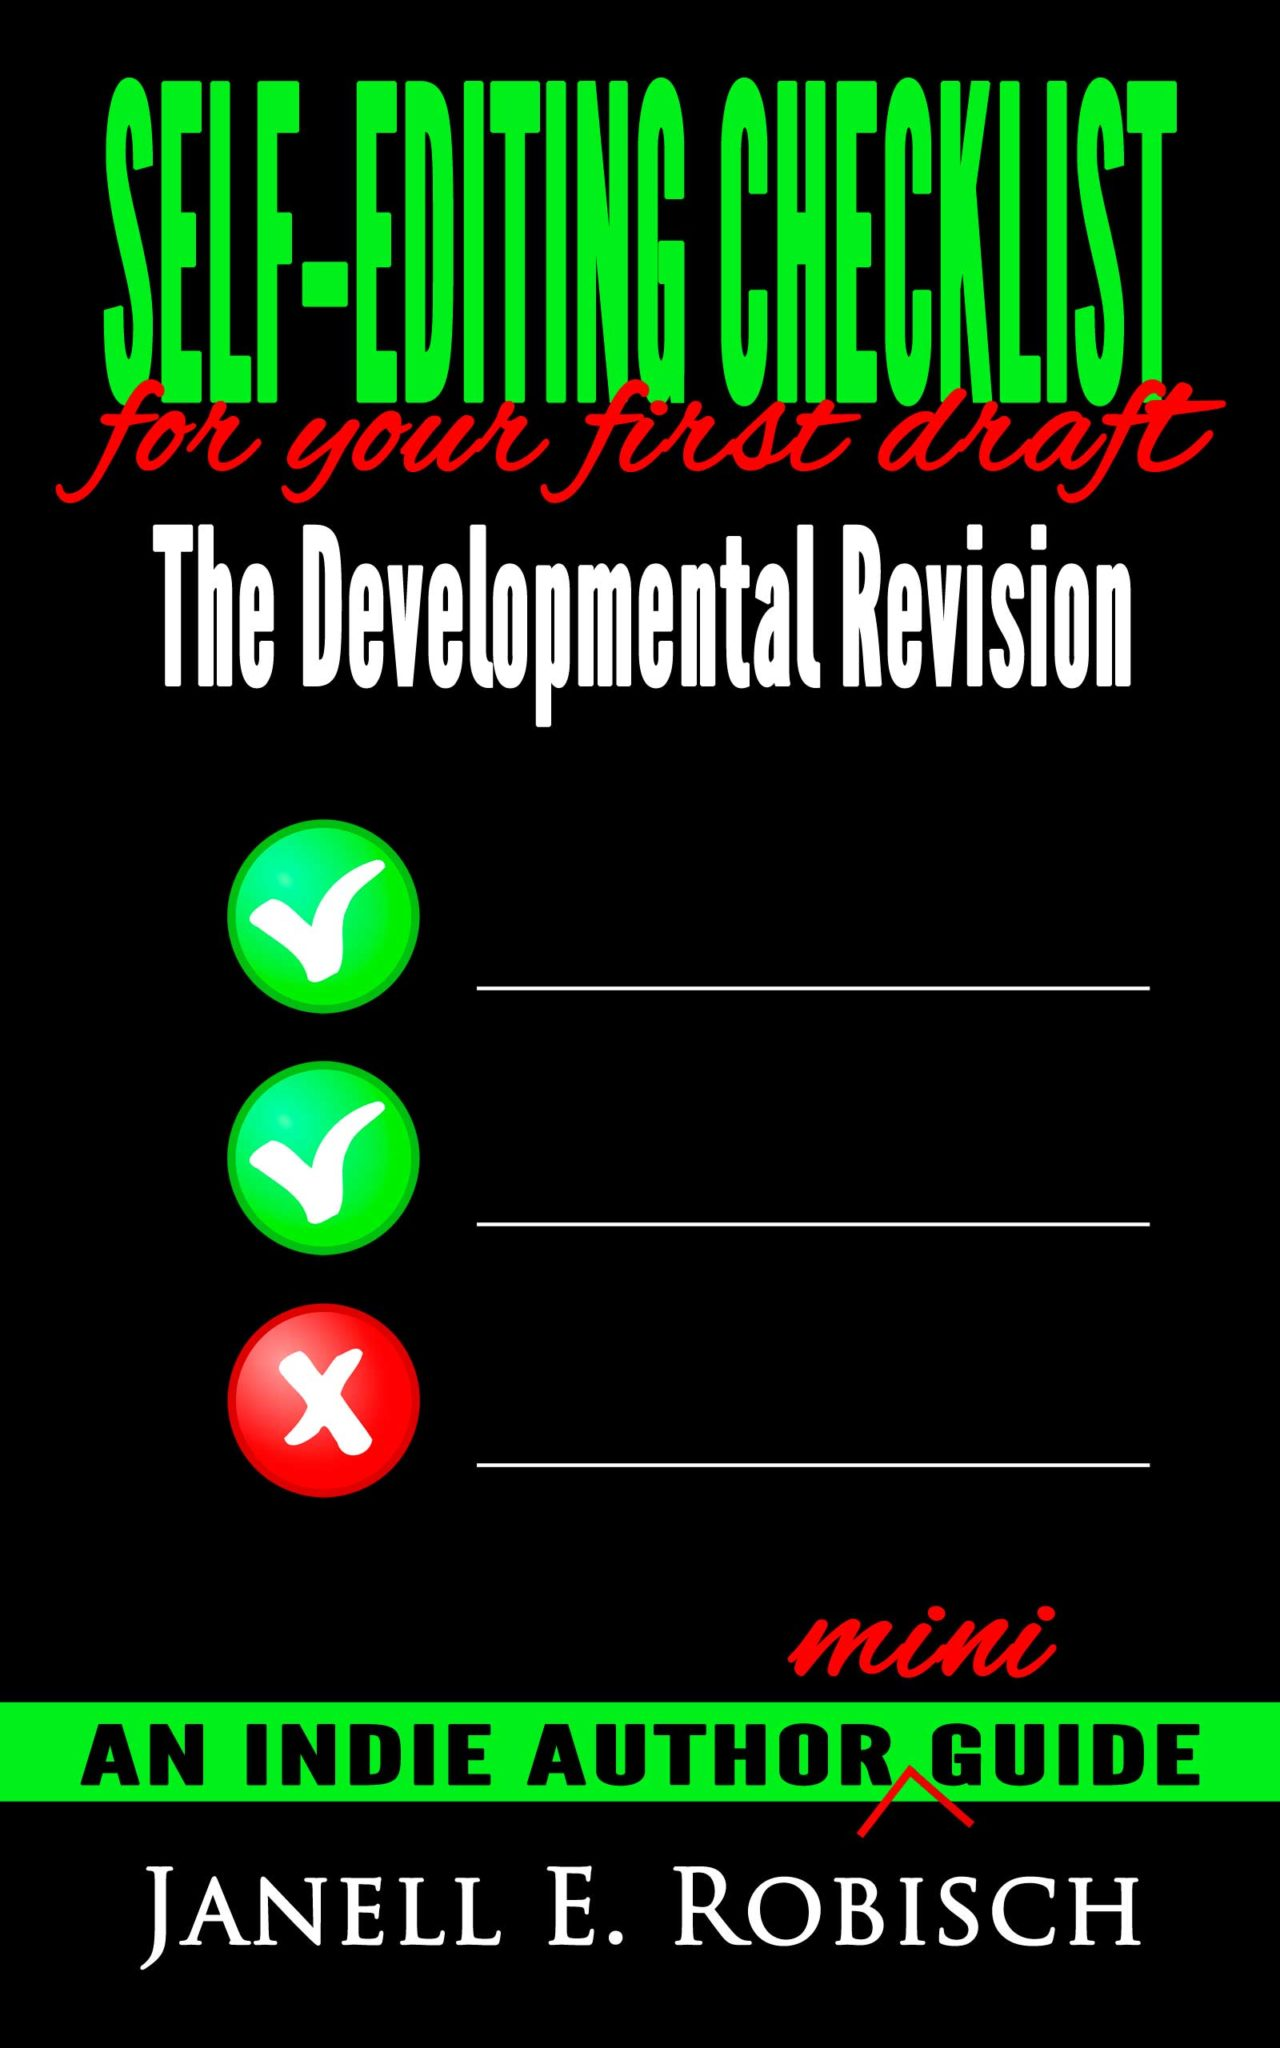 self-editing checklist, revision, self-editing, indie author guide